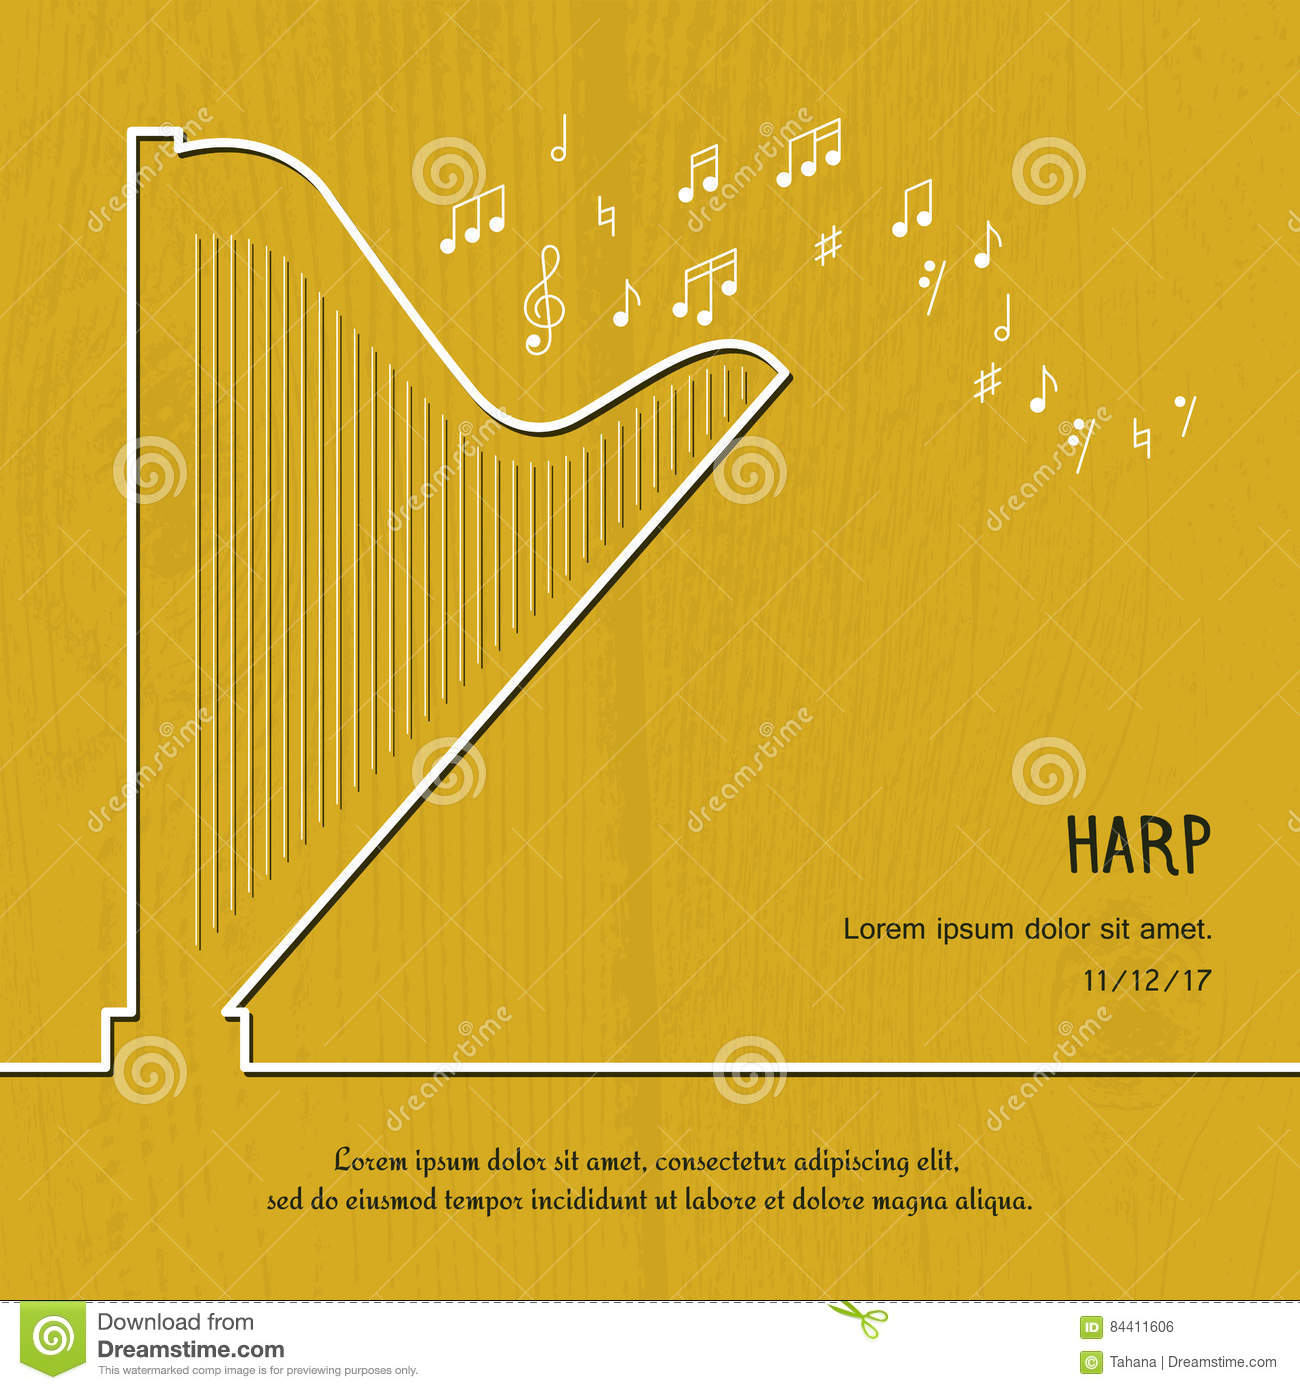 Abstract Music Harp Cover Graphic Vector Poster Illustration